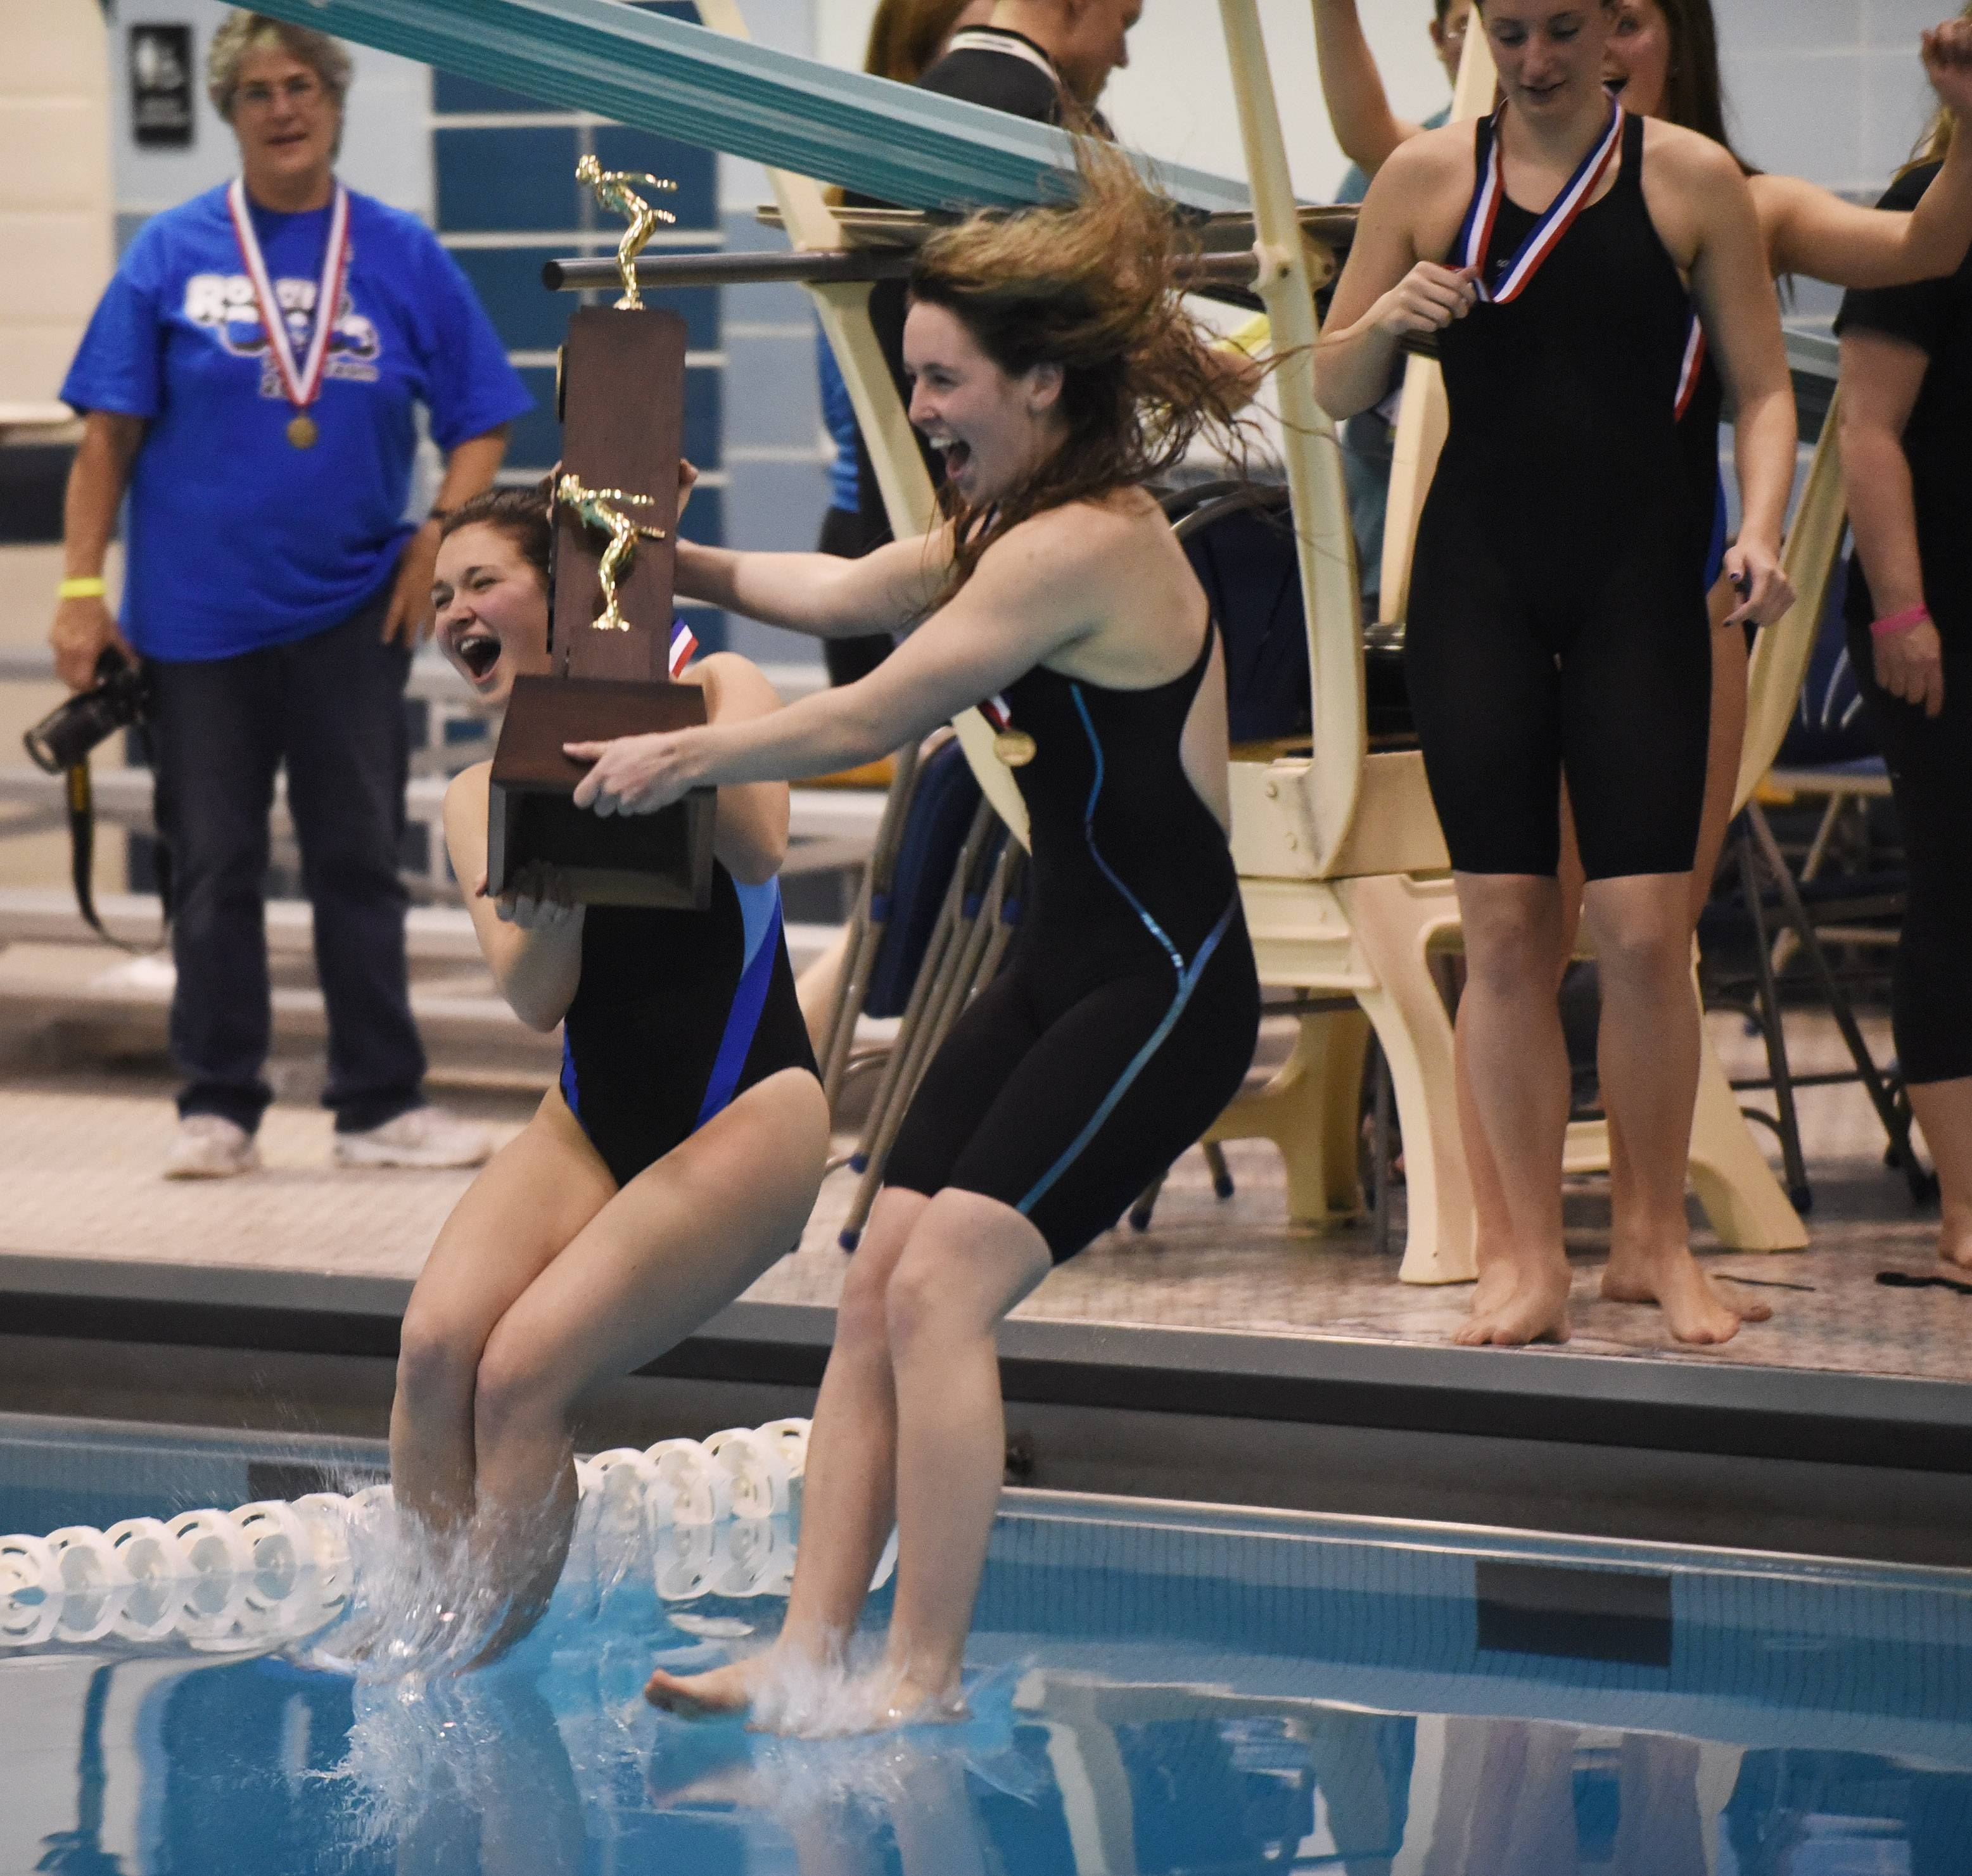 Rosary swimmers jump into the pool with their first-place trophy following the girls state swimming finals at New Trier High School in Winnetka Saturday.